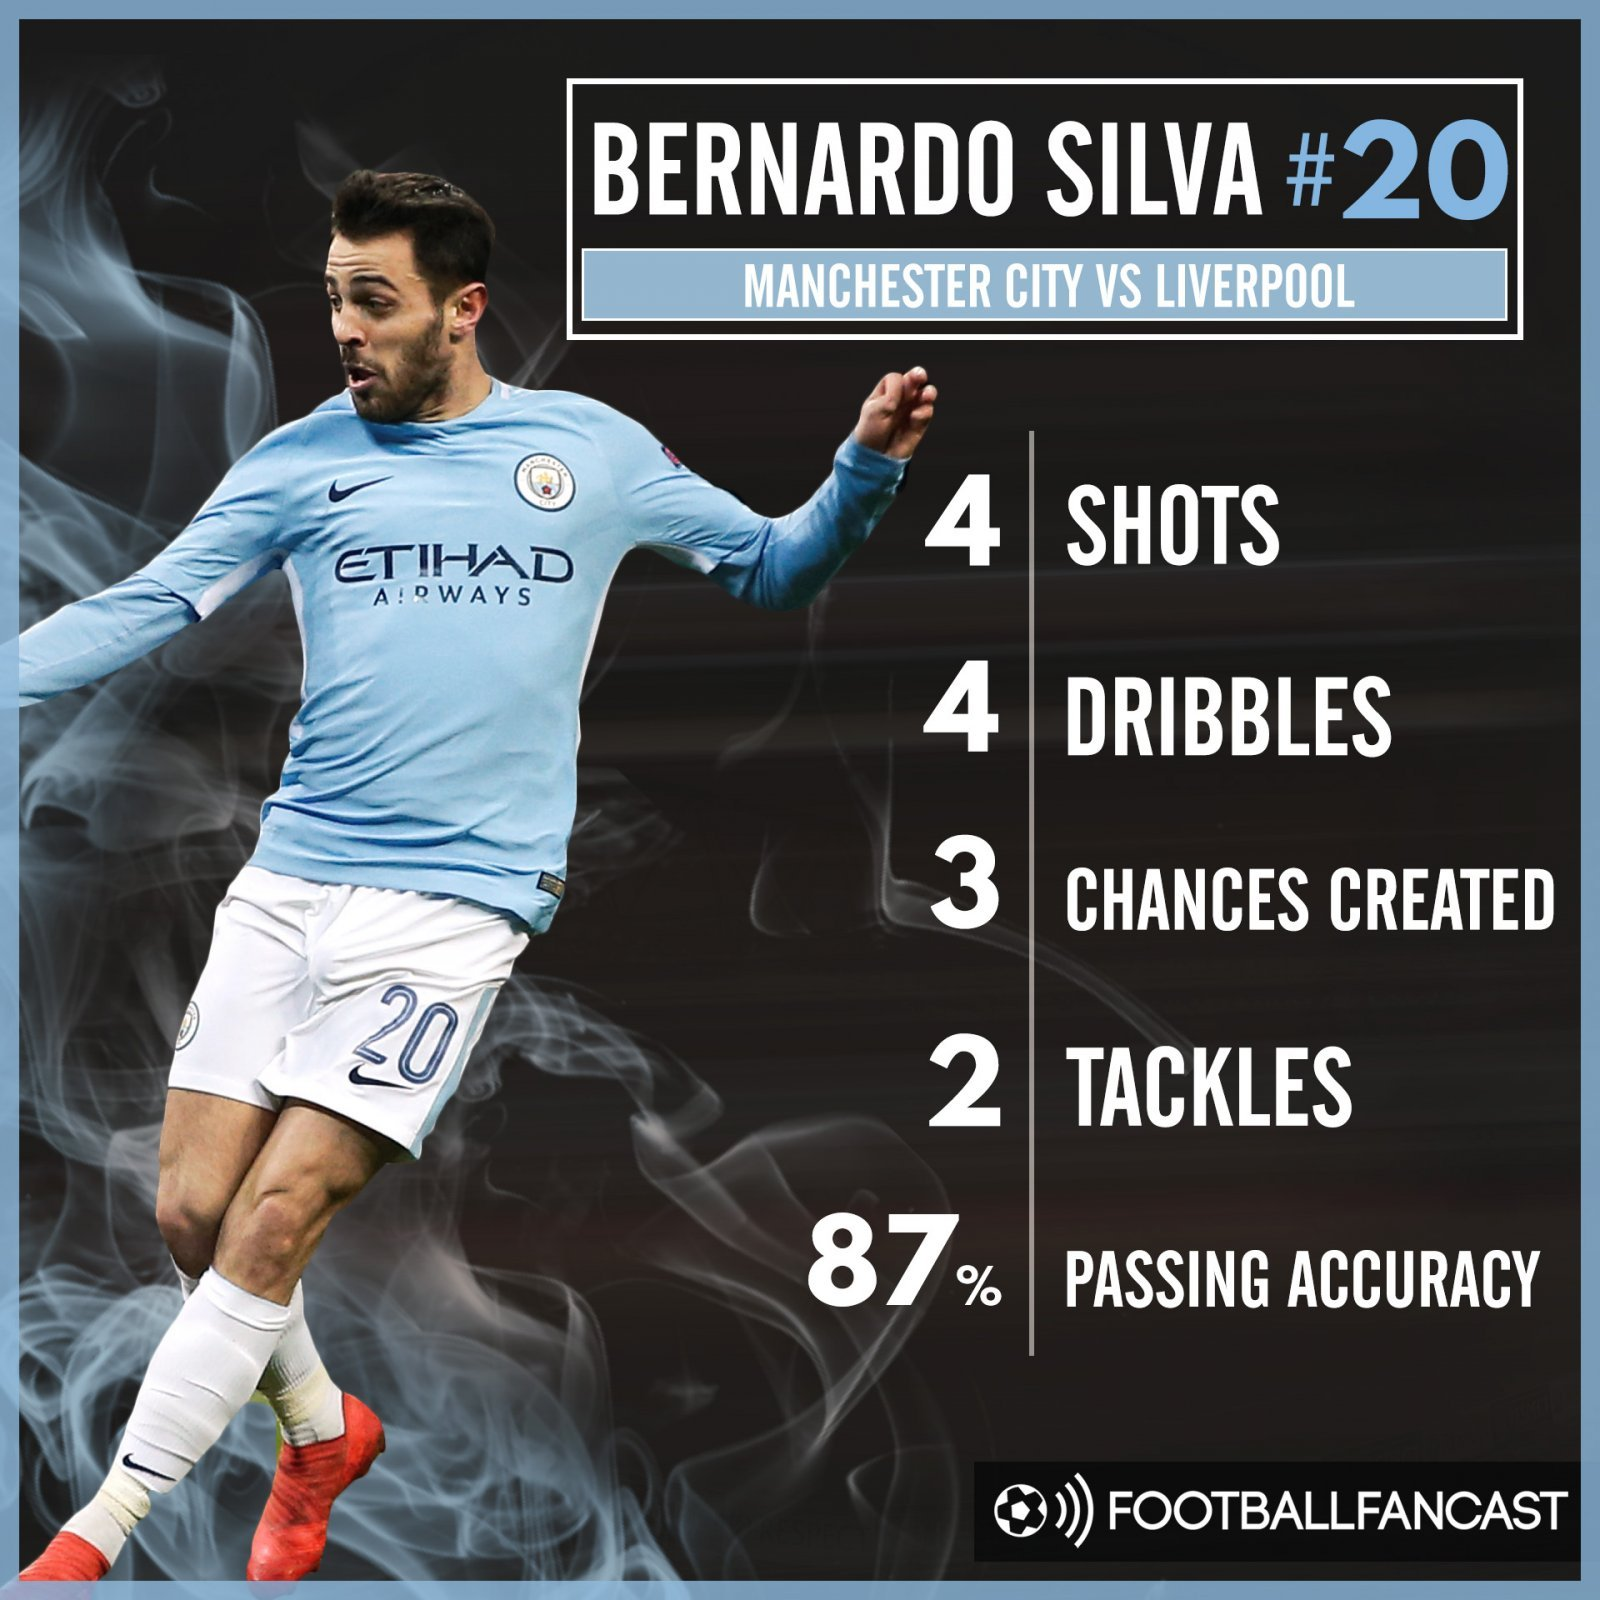 Bernardo Silva's stats from Man City's 2-1 defeat to Liverpool